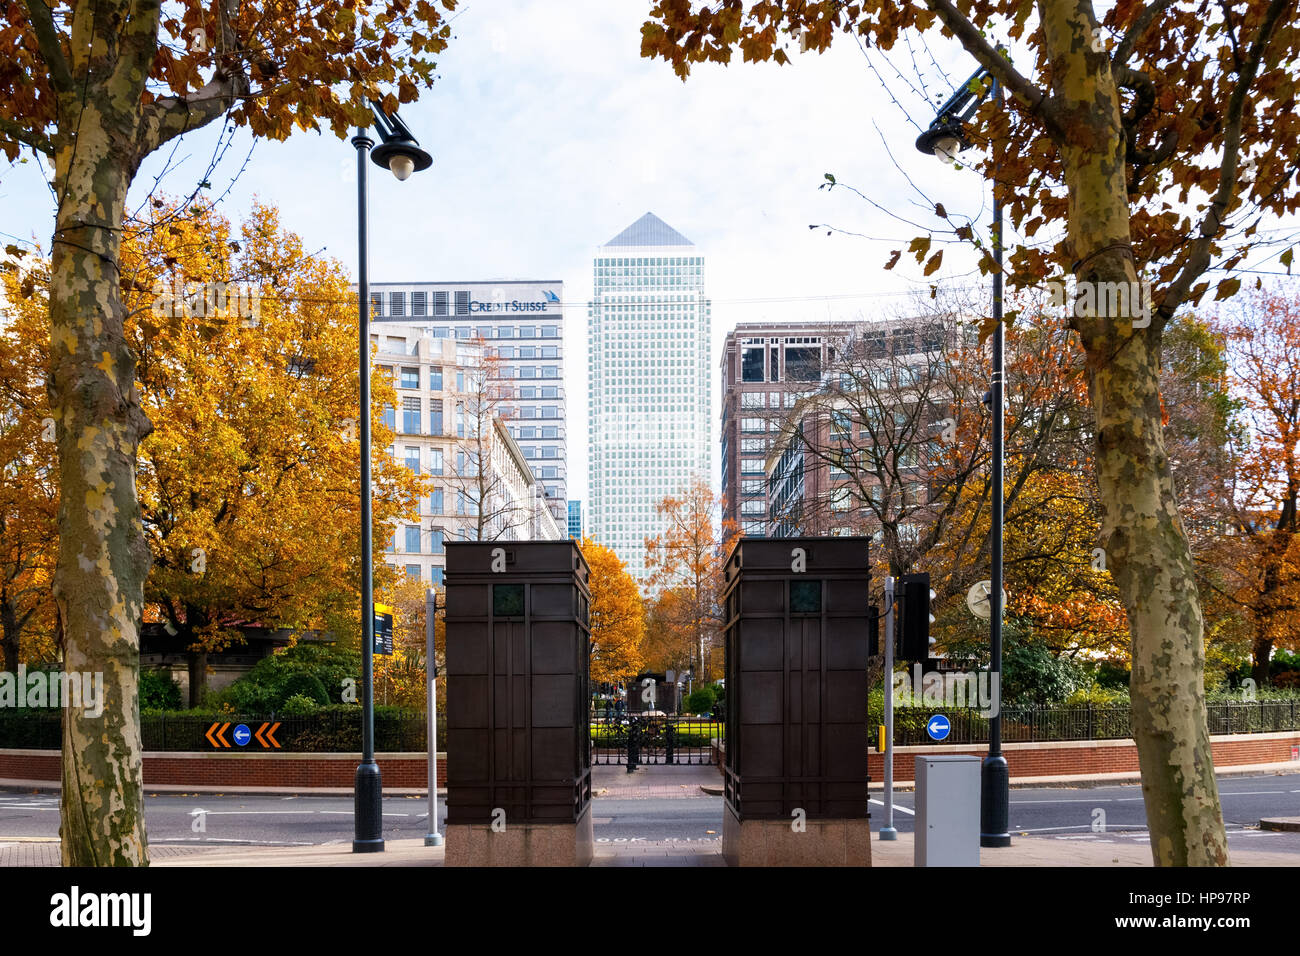 London, UK - November 19, 2016 - One Canada Square building in Canary Wharf seen from Westferry Circus - Stock Image